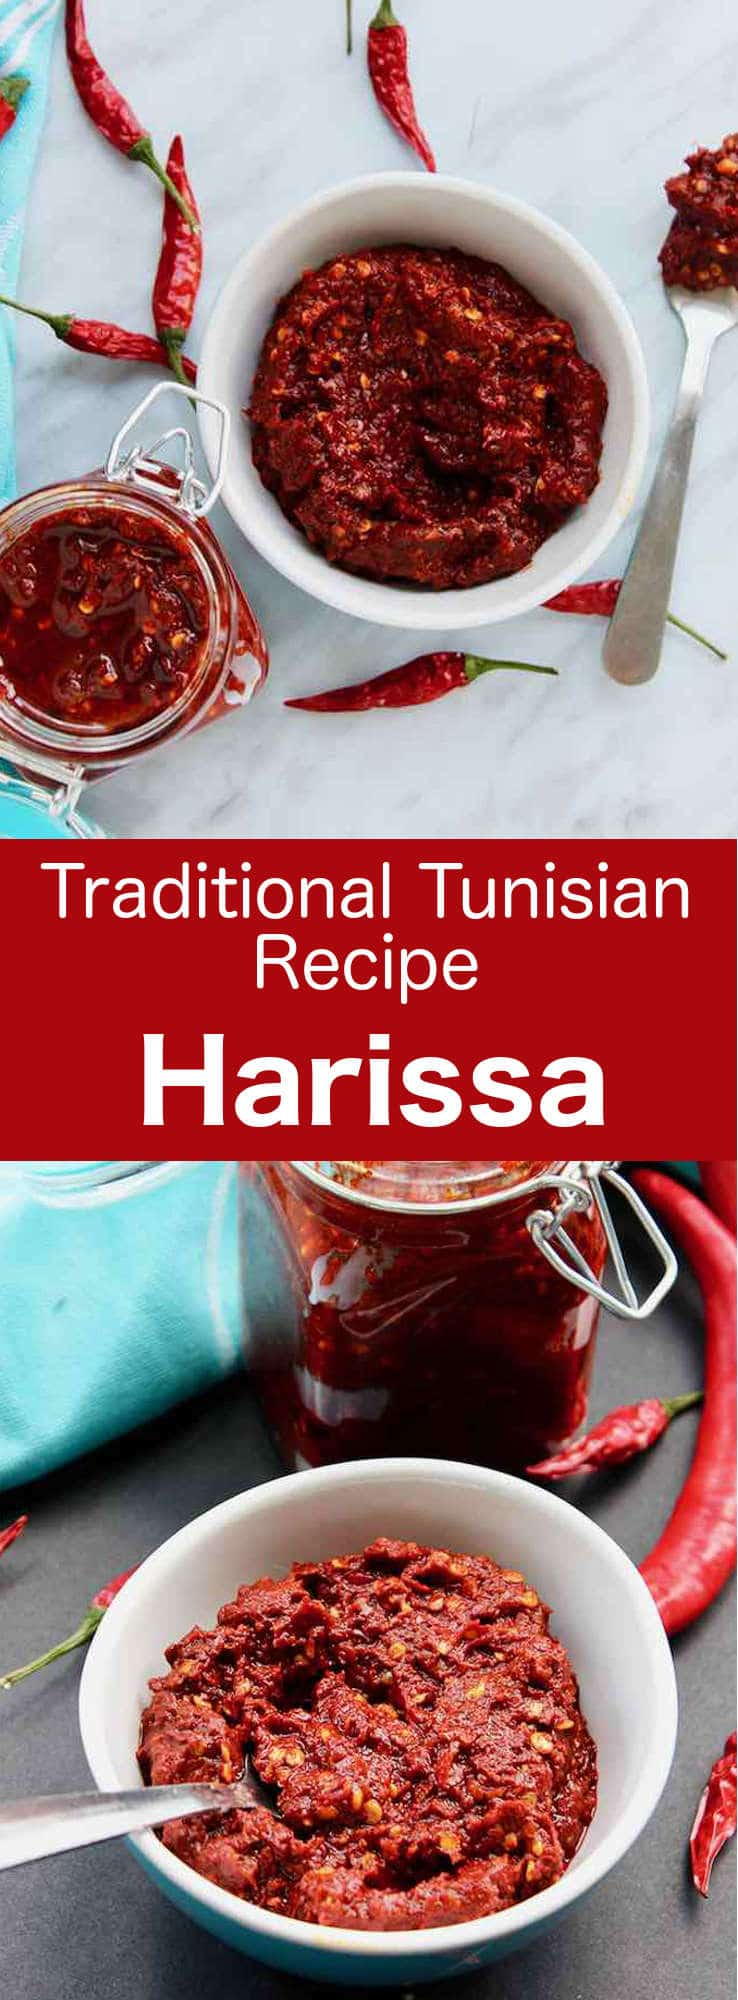 Harissa is a Tunisian hot chili paste, which is sometimes described as Tunisia's main condiment. Bright red in color, it is served with most meals as a dip and is often used as an ingredient in stews and soups. #Tunisia #Tunisian #TunisianCuisine #TunisianRecipe #NorthAfricanCuisine #NorthAfricanRecipe #NorthAfrica #Maghreb #MaghrebCuisine #WorldCuisine #196flavors